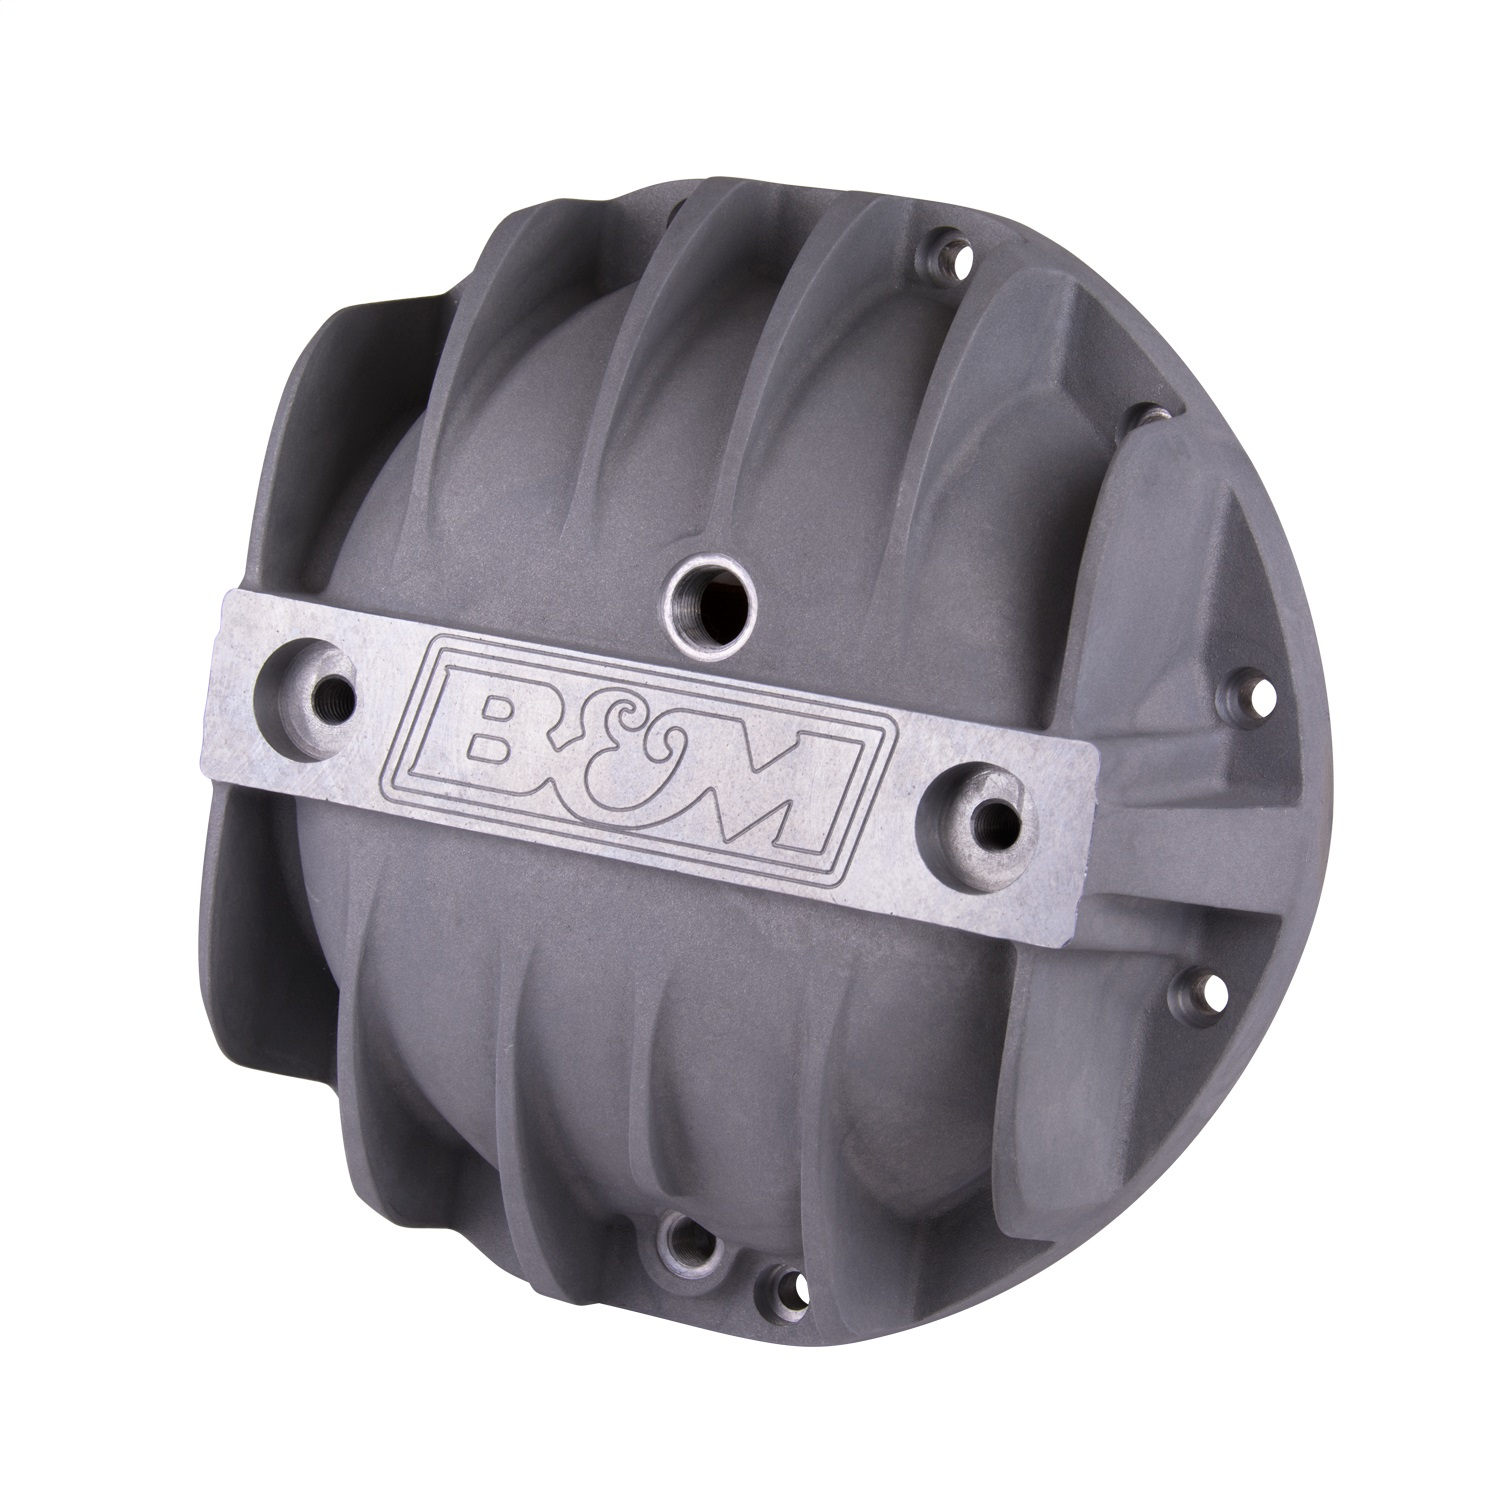 B&M 70500 Differential Cover